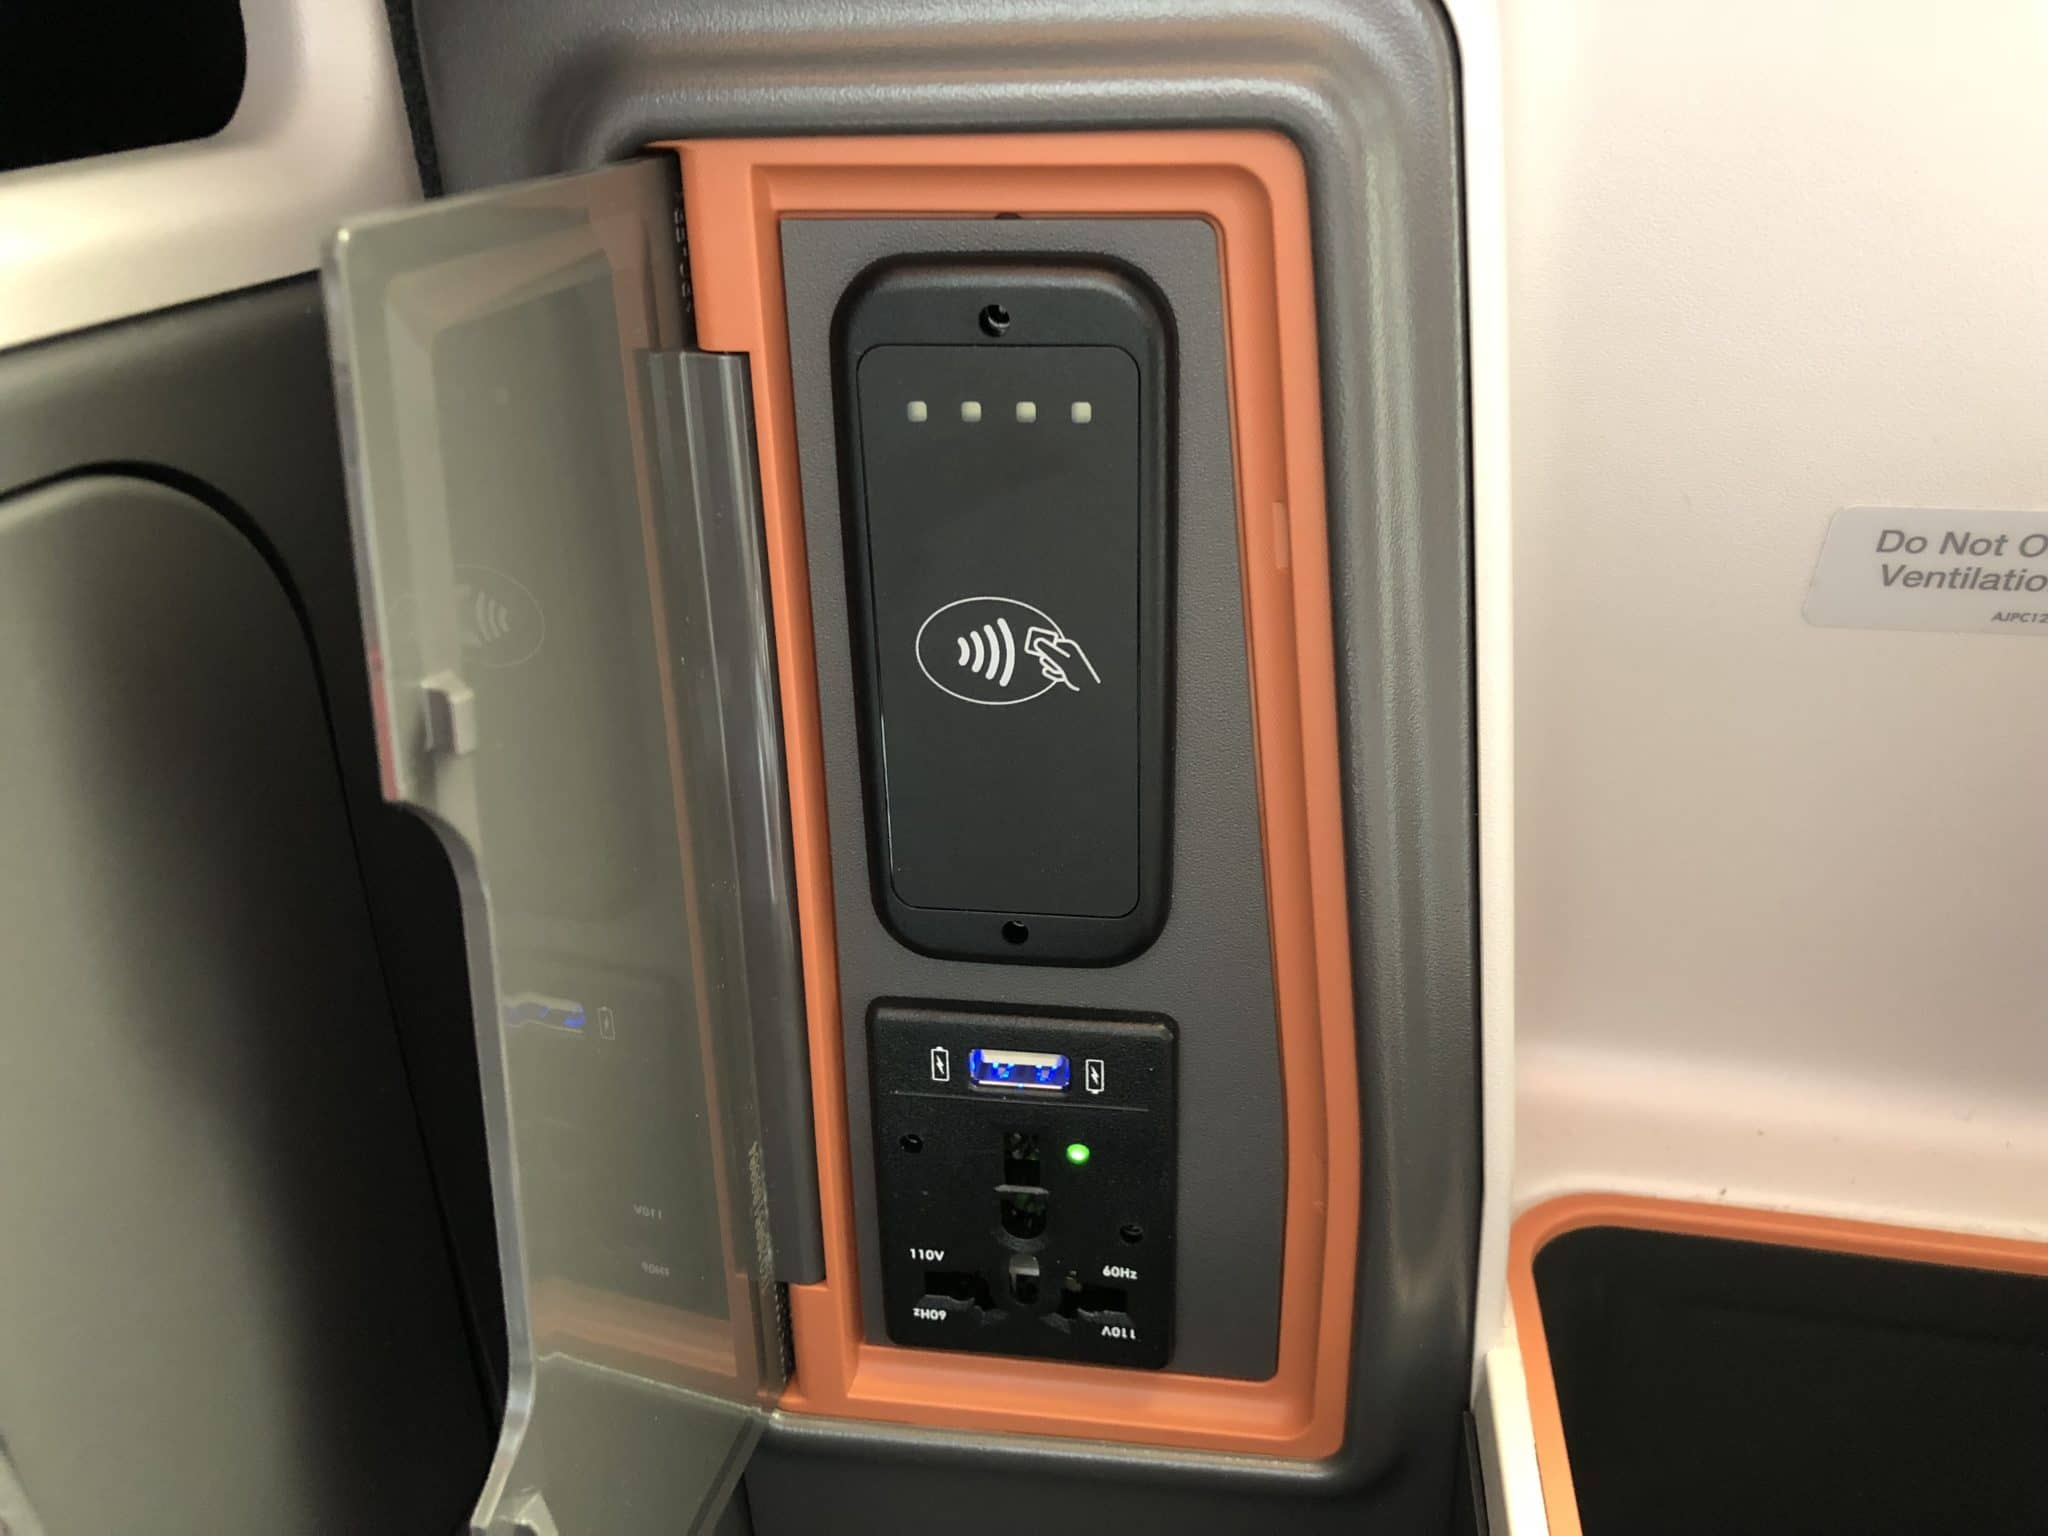 Singapore Airlines neue Business Class A380 USB Anschluss links